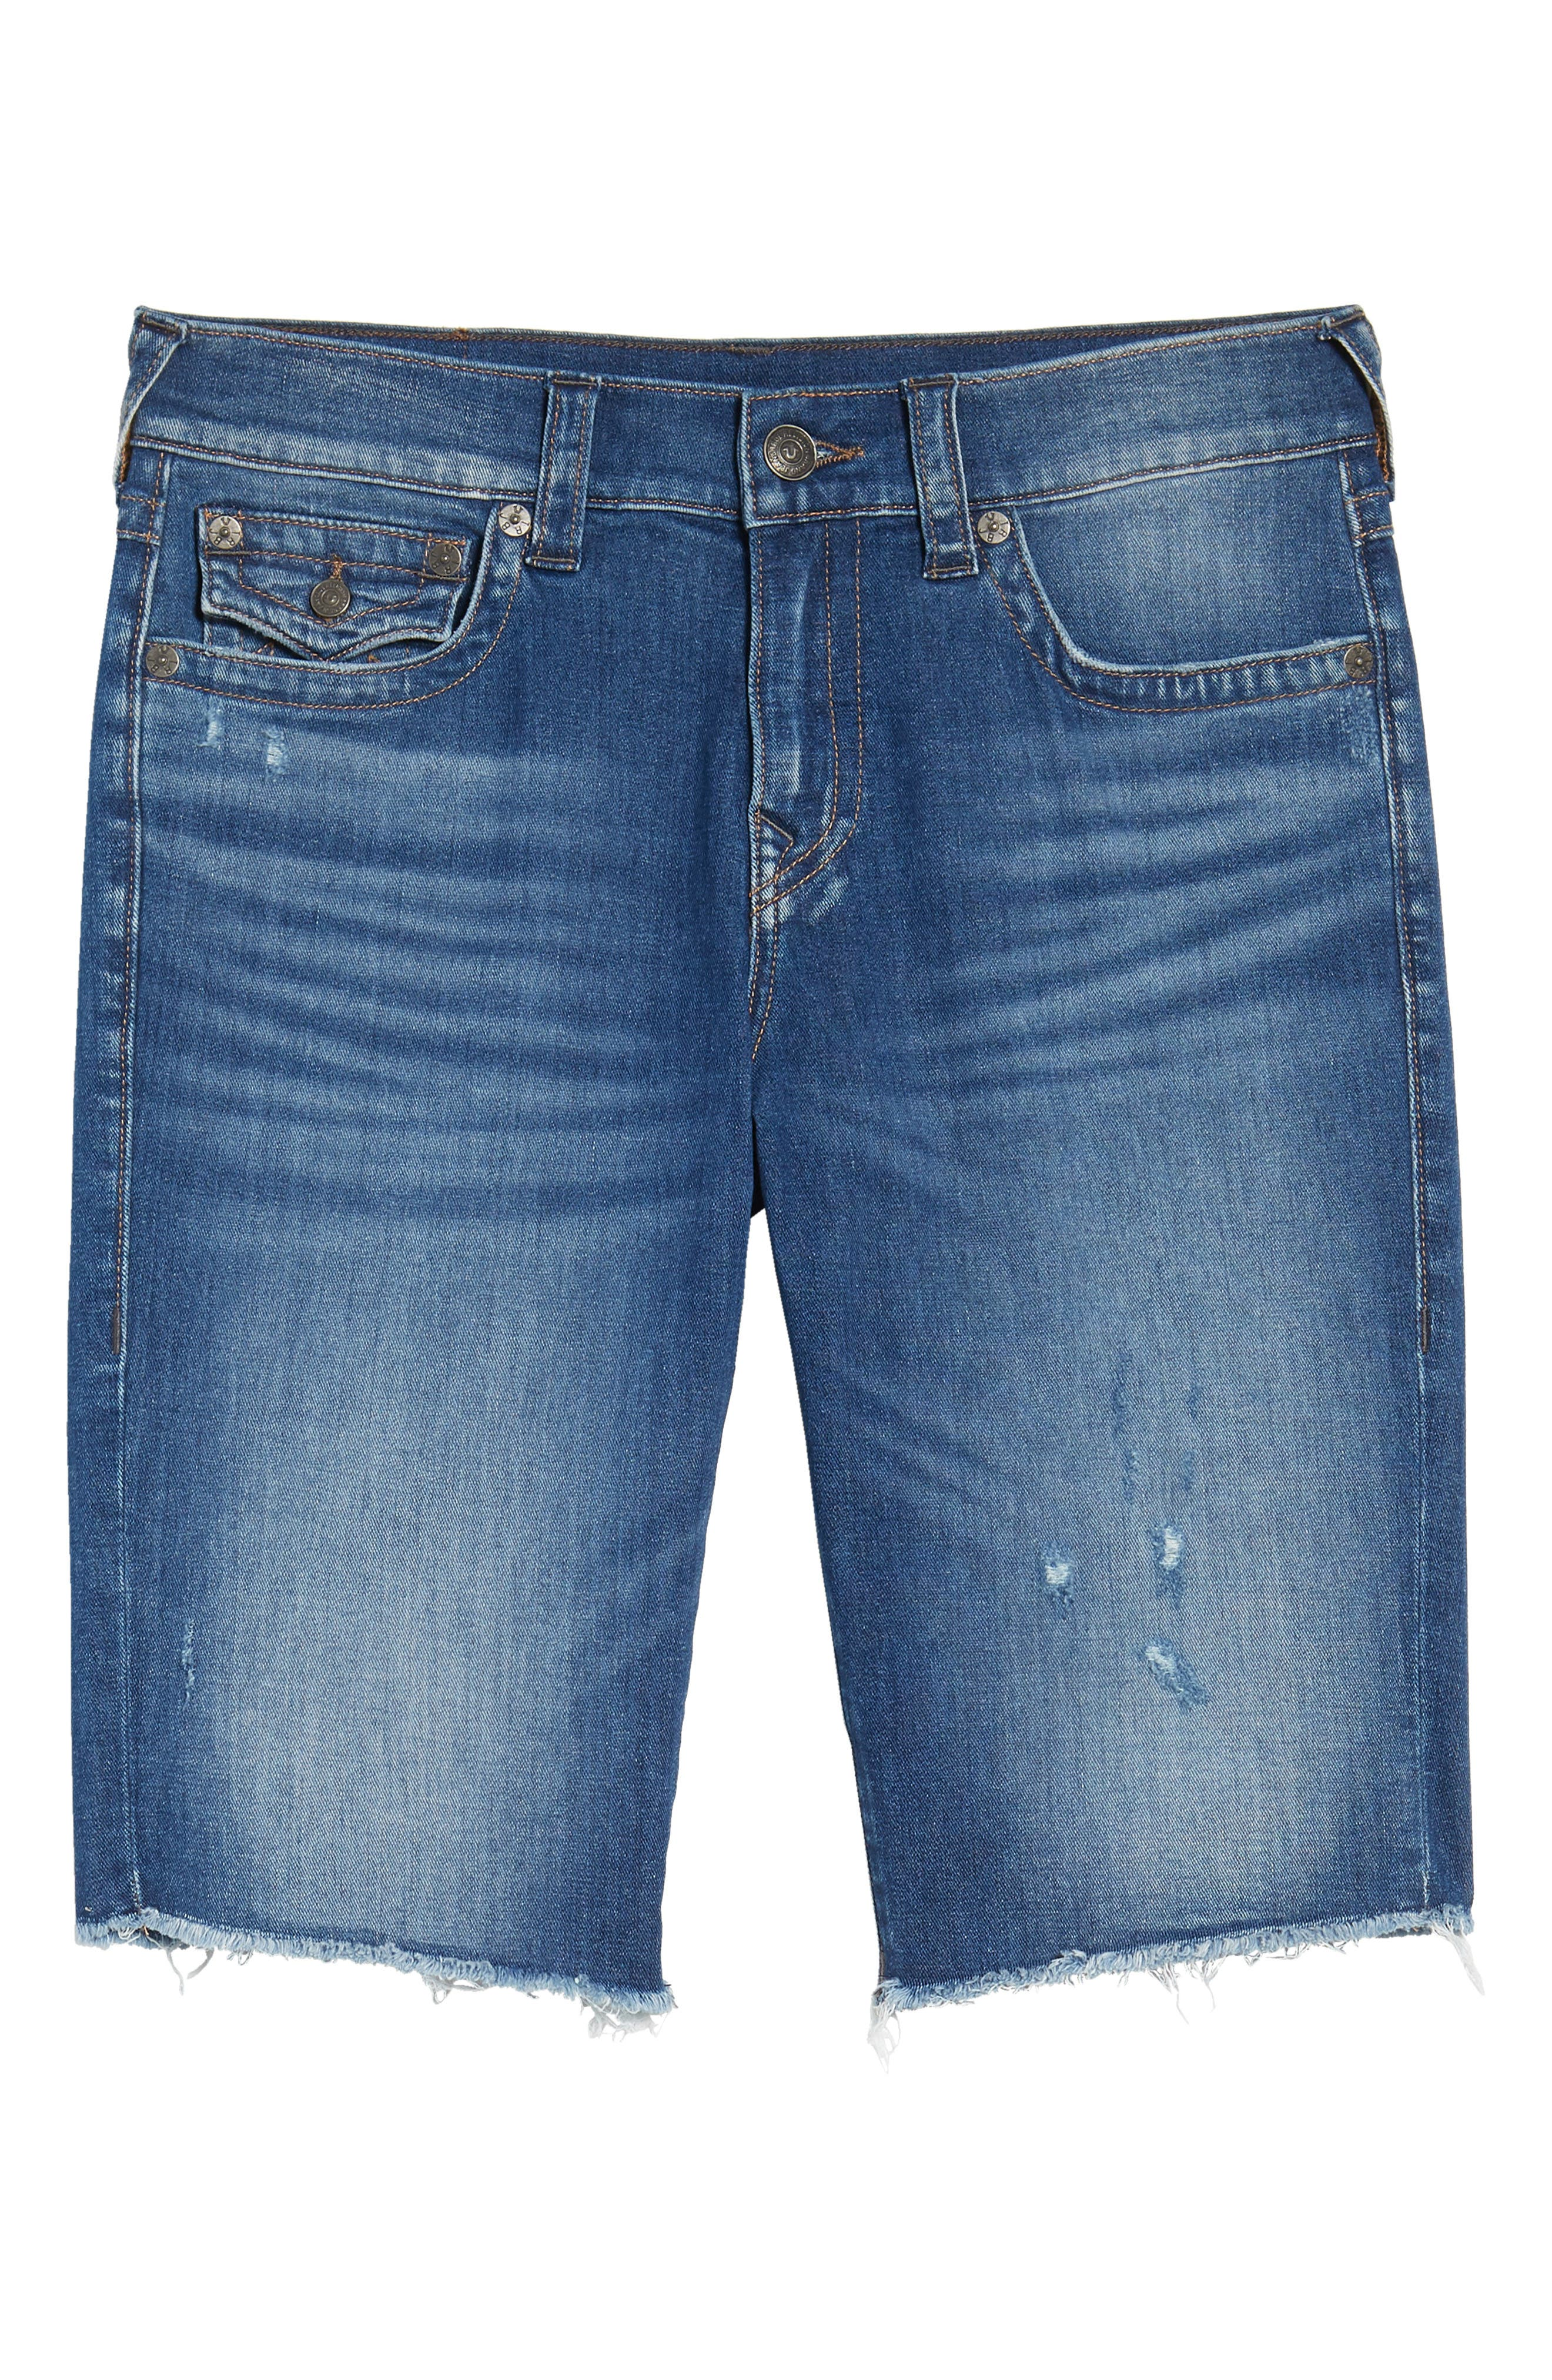 Ricky Relaxed Fit Denim Shorts,                             Alternate thumbnail 6, color,